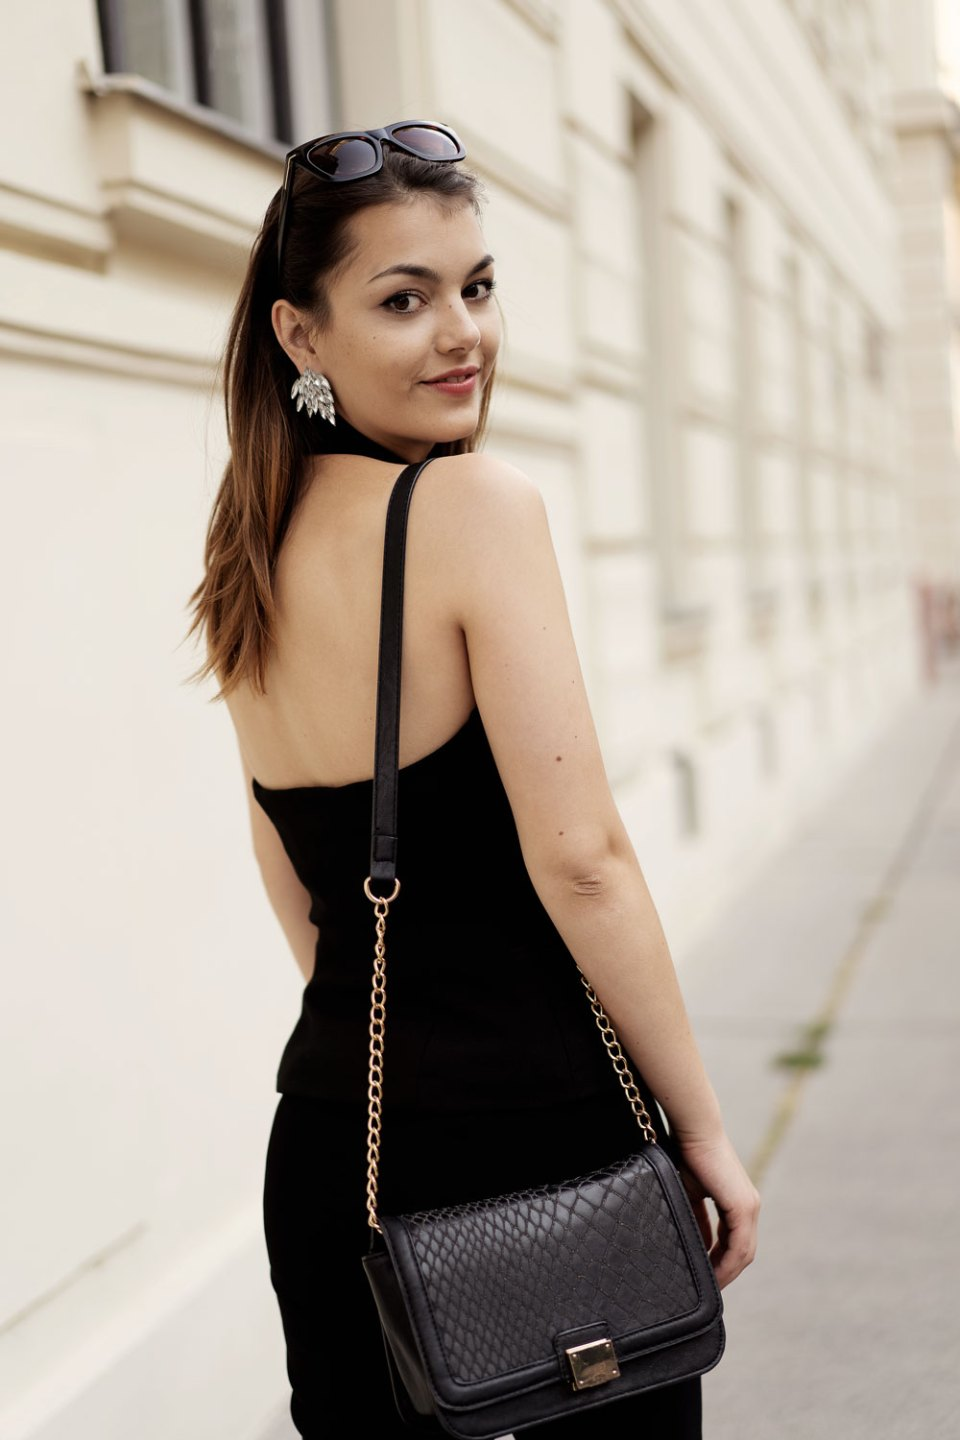 Elegantes Outfit mit Schlaghose